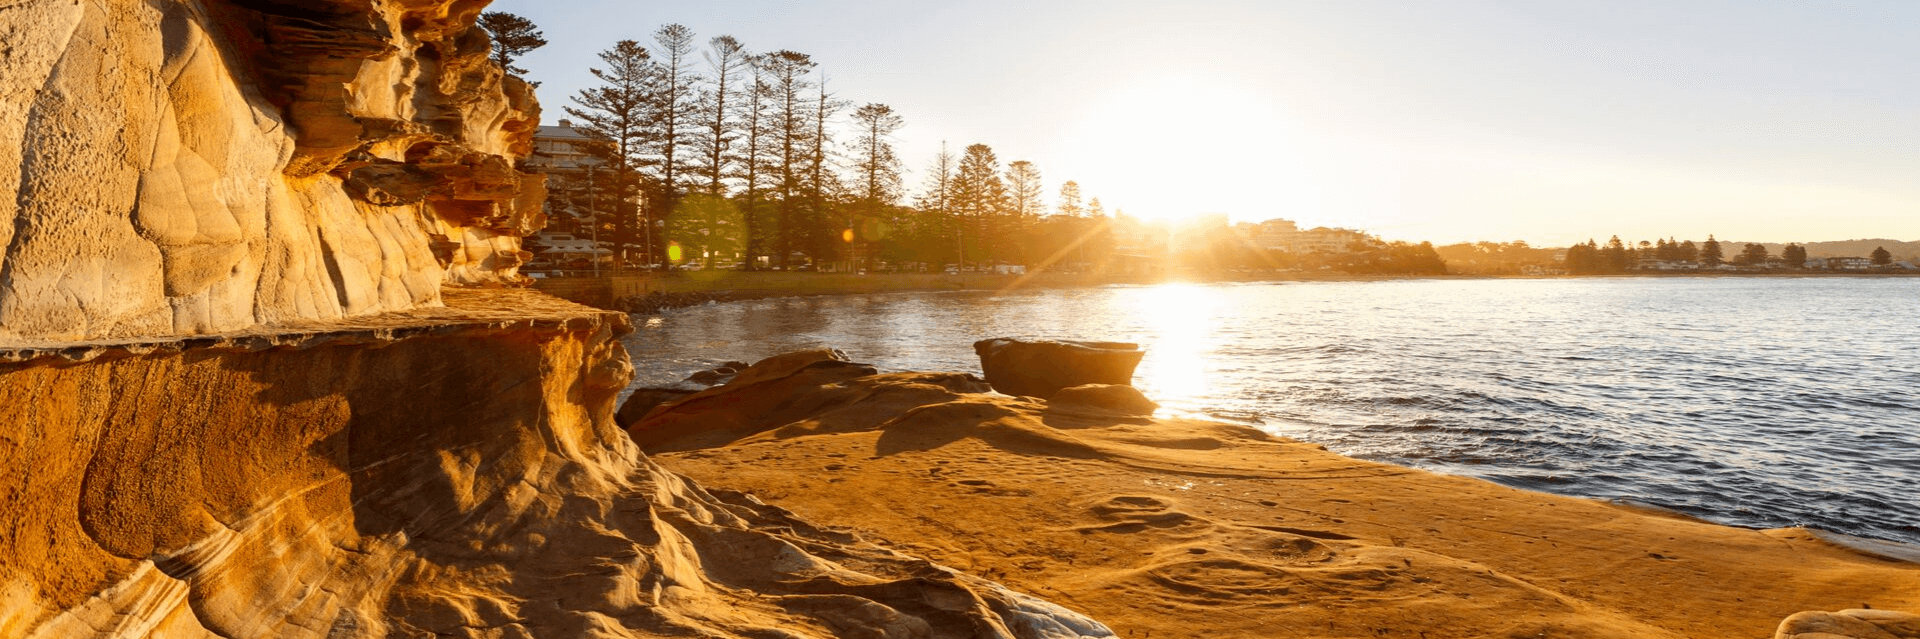 Terrigal Beach at Sunrise. Photo Credit: Central Coast Tourism